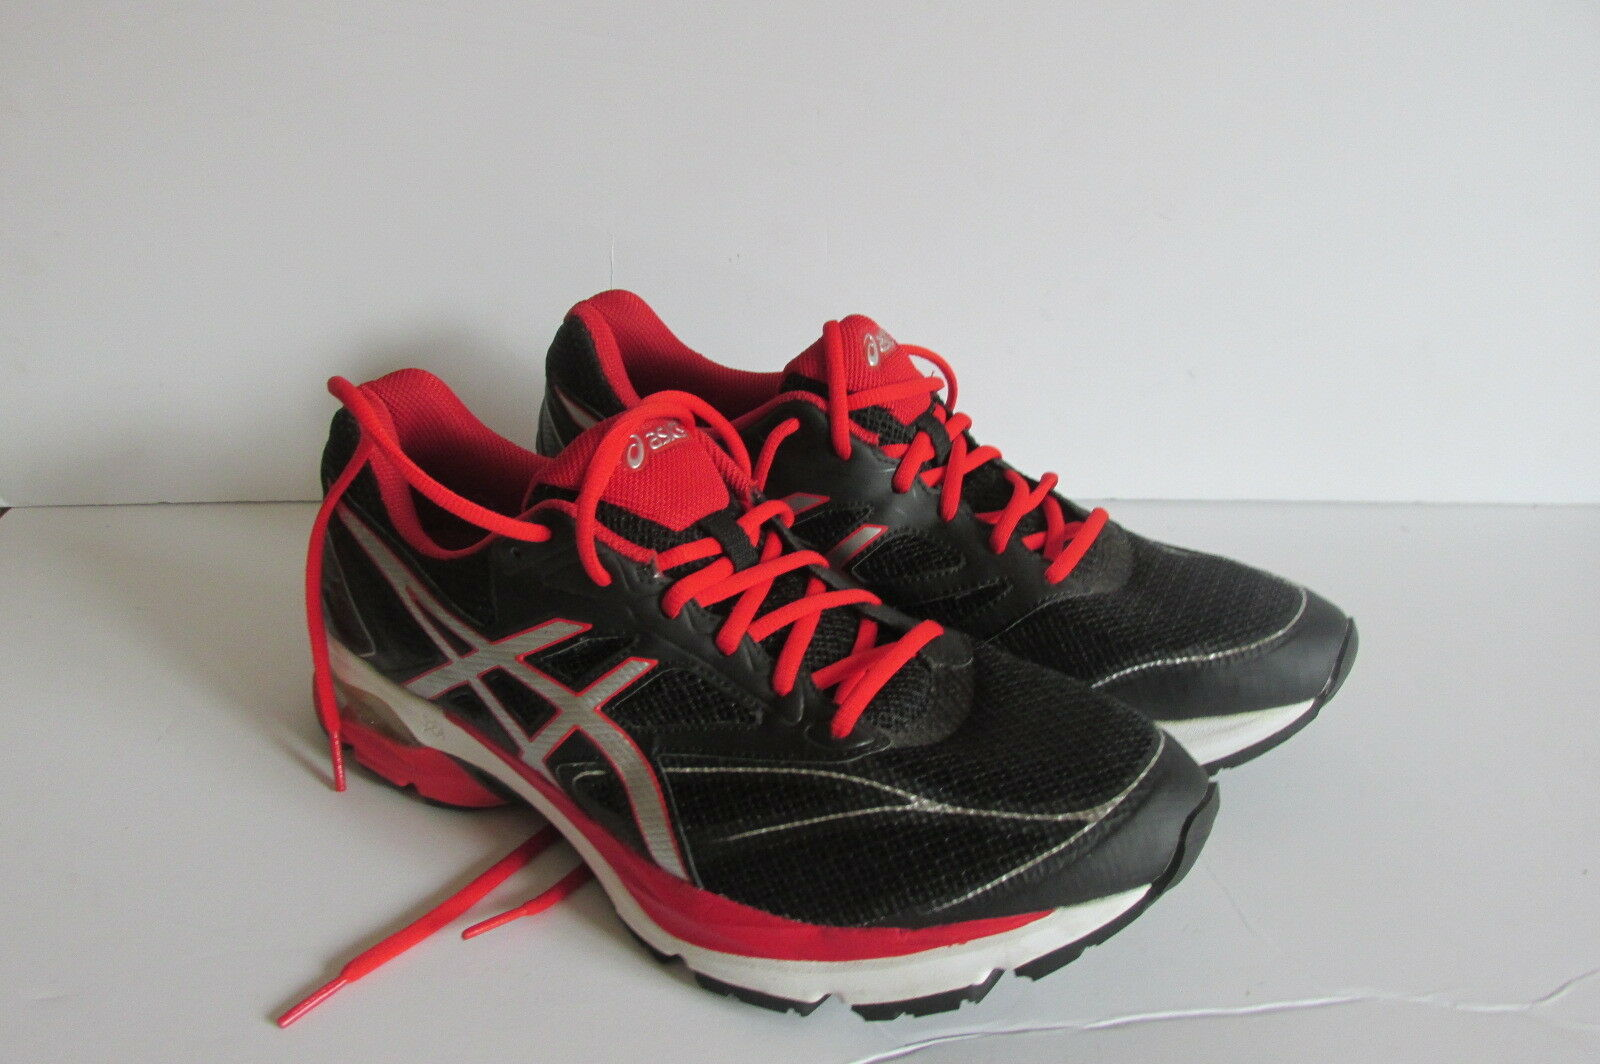 Asics Gel Pulse Men's Fit Running shoes Sneakers T6E1N Size 11.5